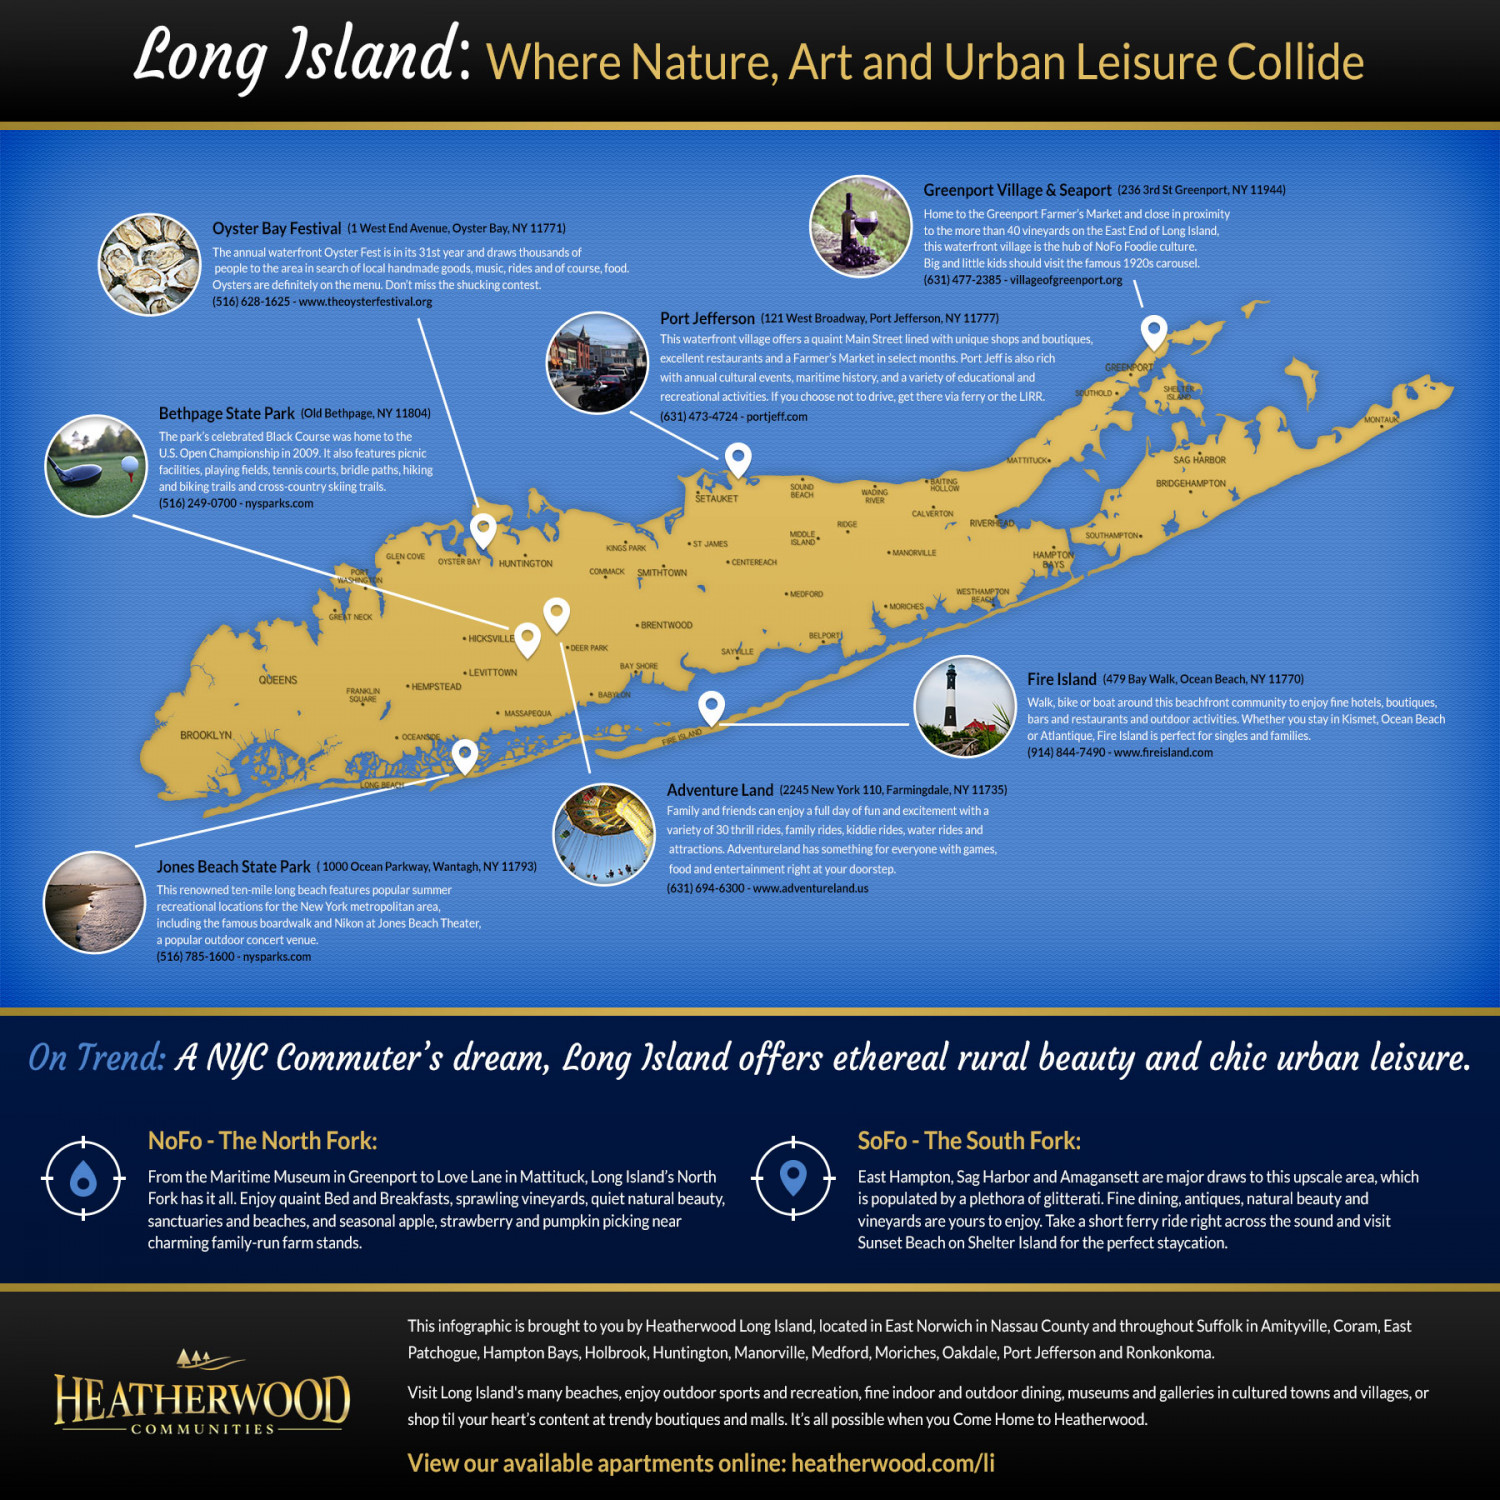 Long Island: Where Nature, Art and Urban Leisure Collide Infographic